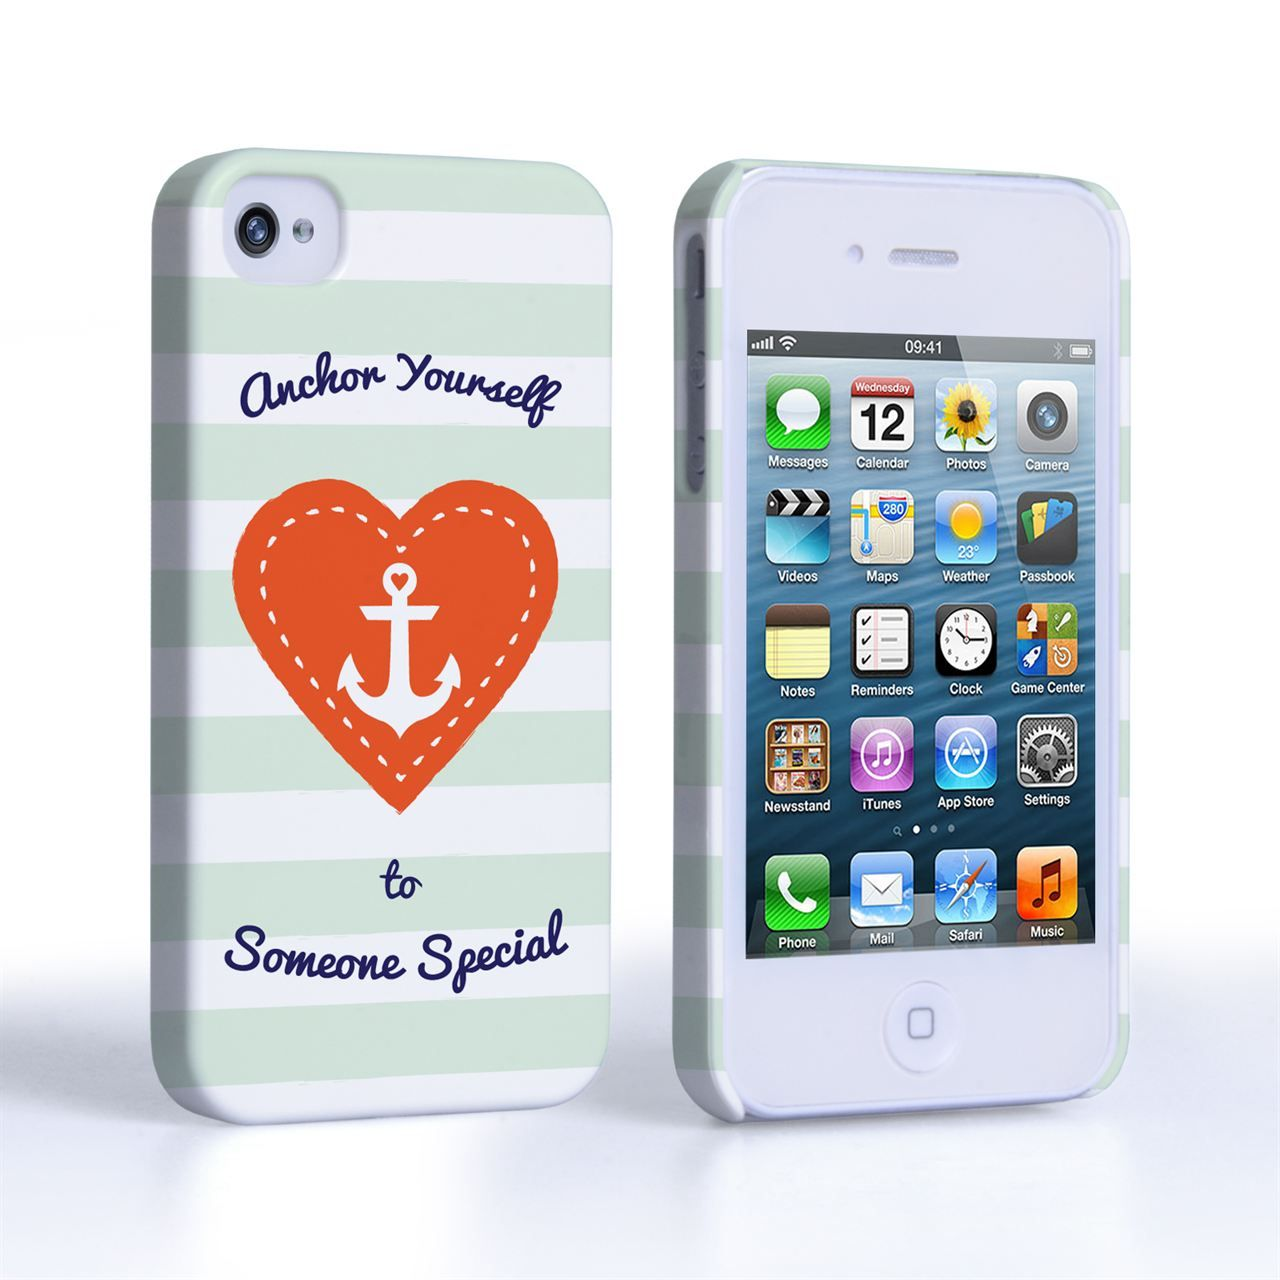 iPhone 4S Anchor Love Heart Case #Red #Mint #White #Navy #Anchor #Heart #Typography #Illustration #sailor #Ship #Minimal #Valentine #Love #ValentinesDay #Gift #Present #iPhone4 #iPhone4S #Case #Cover #HardCase #PhoneCover #Valentines